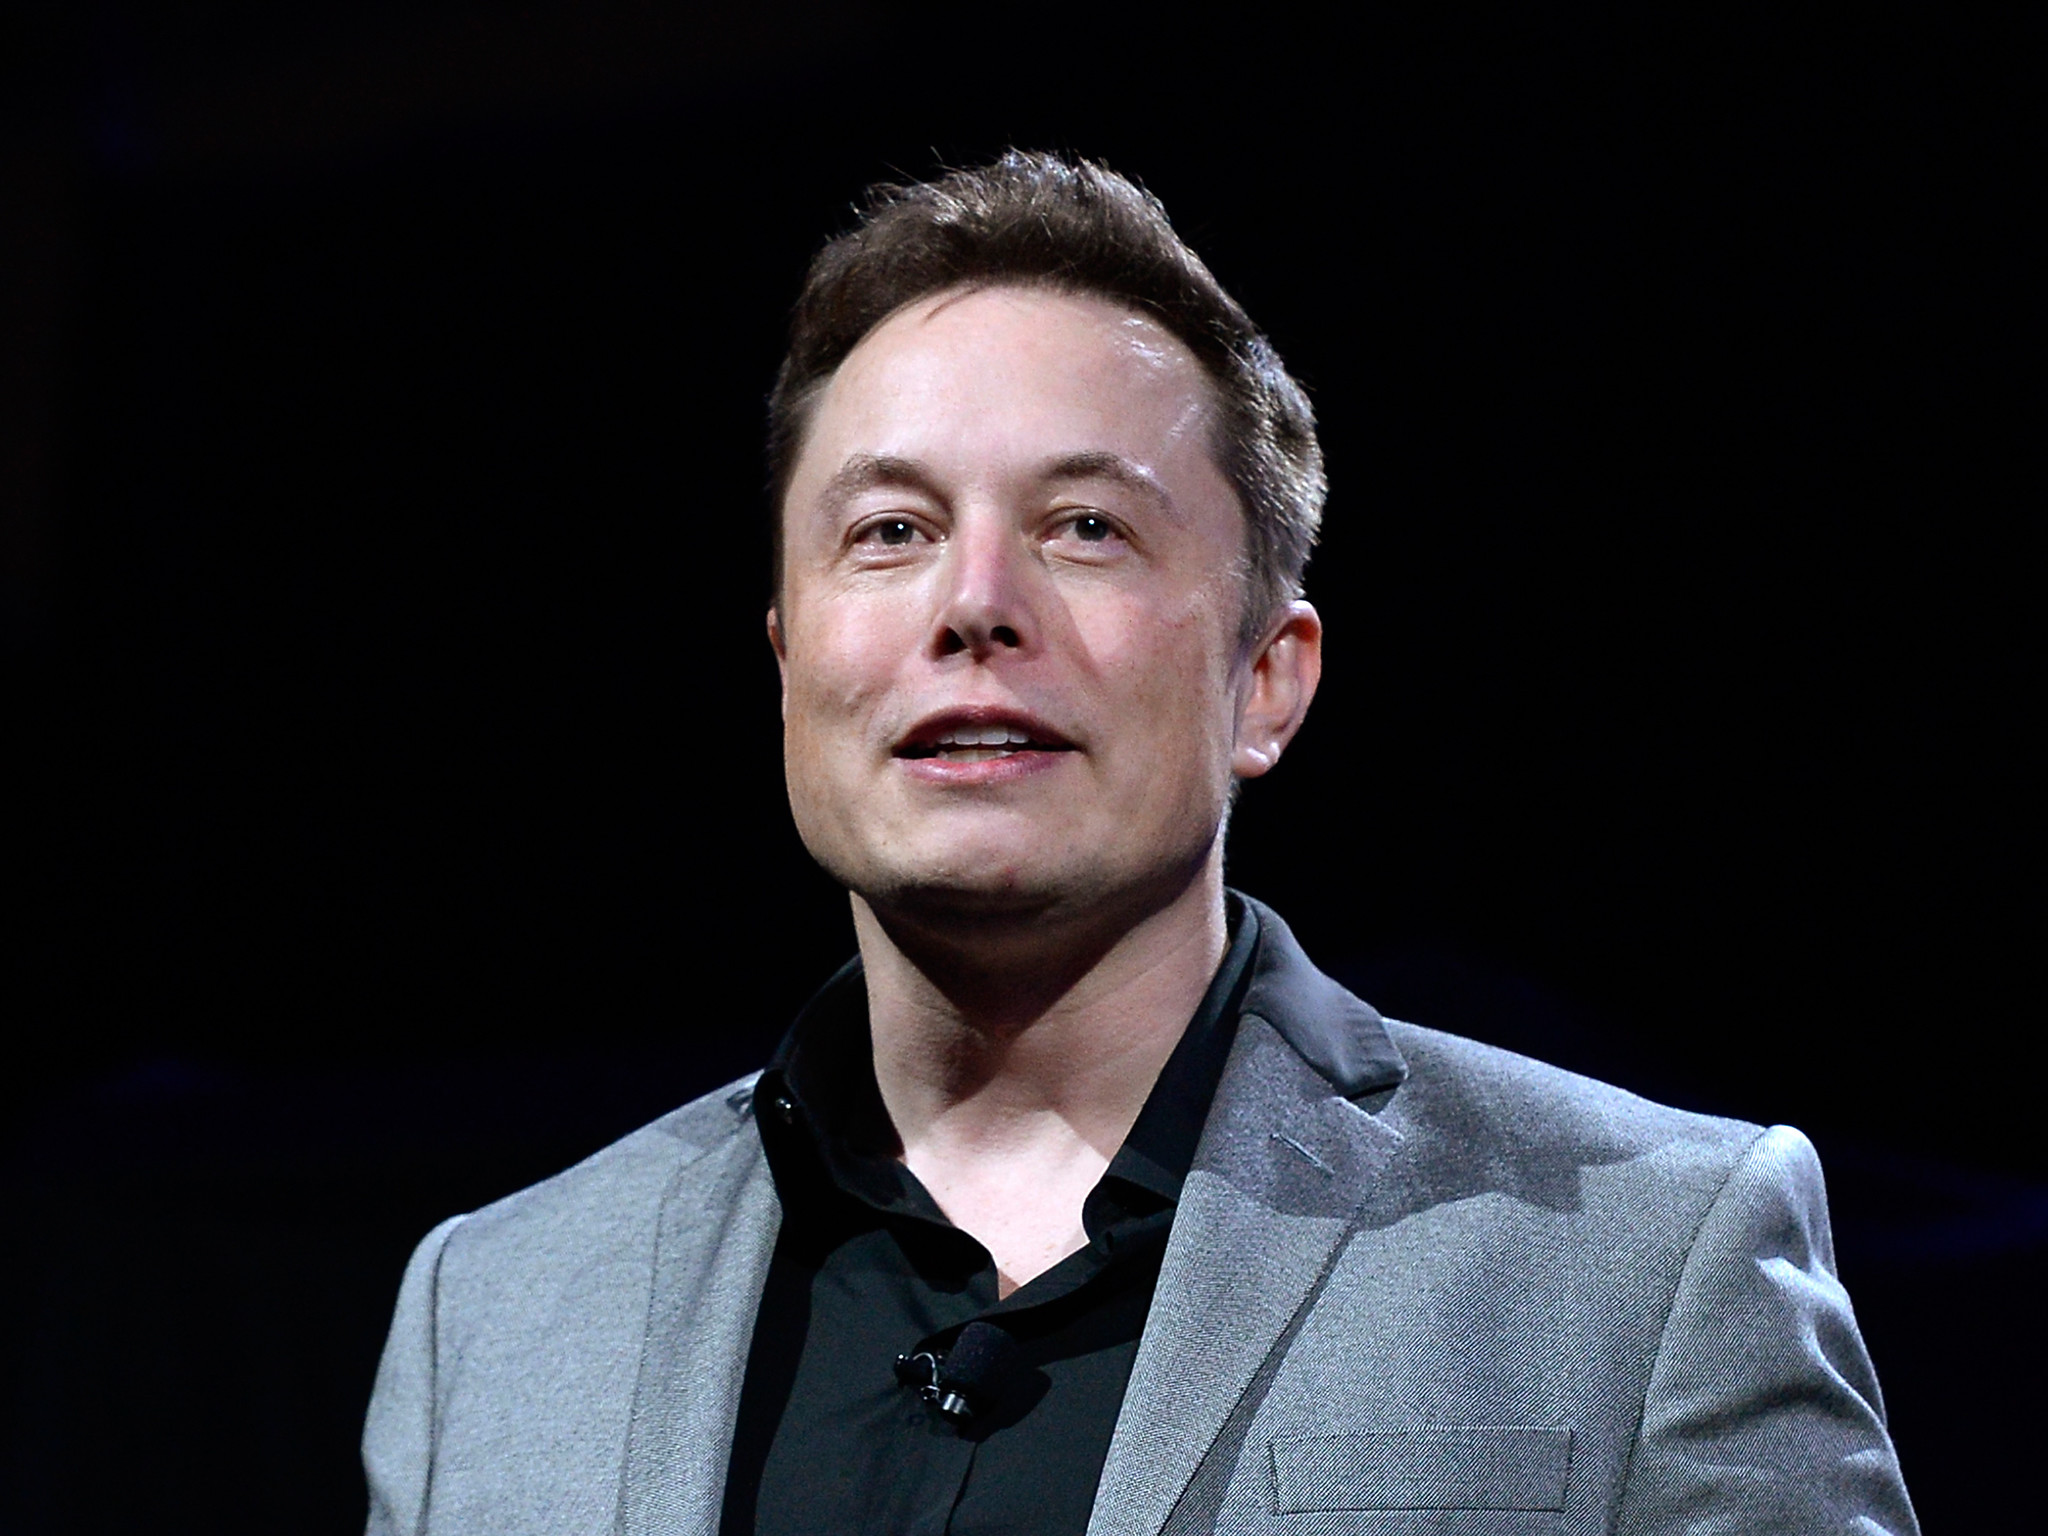 Elon Musk says people should receive a universal income once robots take  their jobs | The Independent